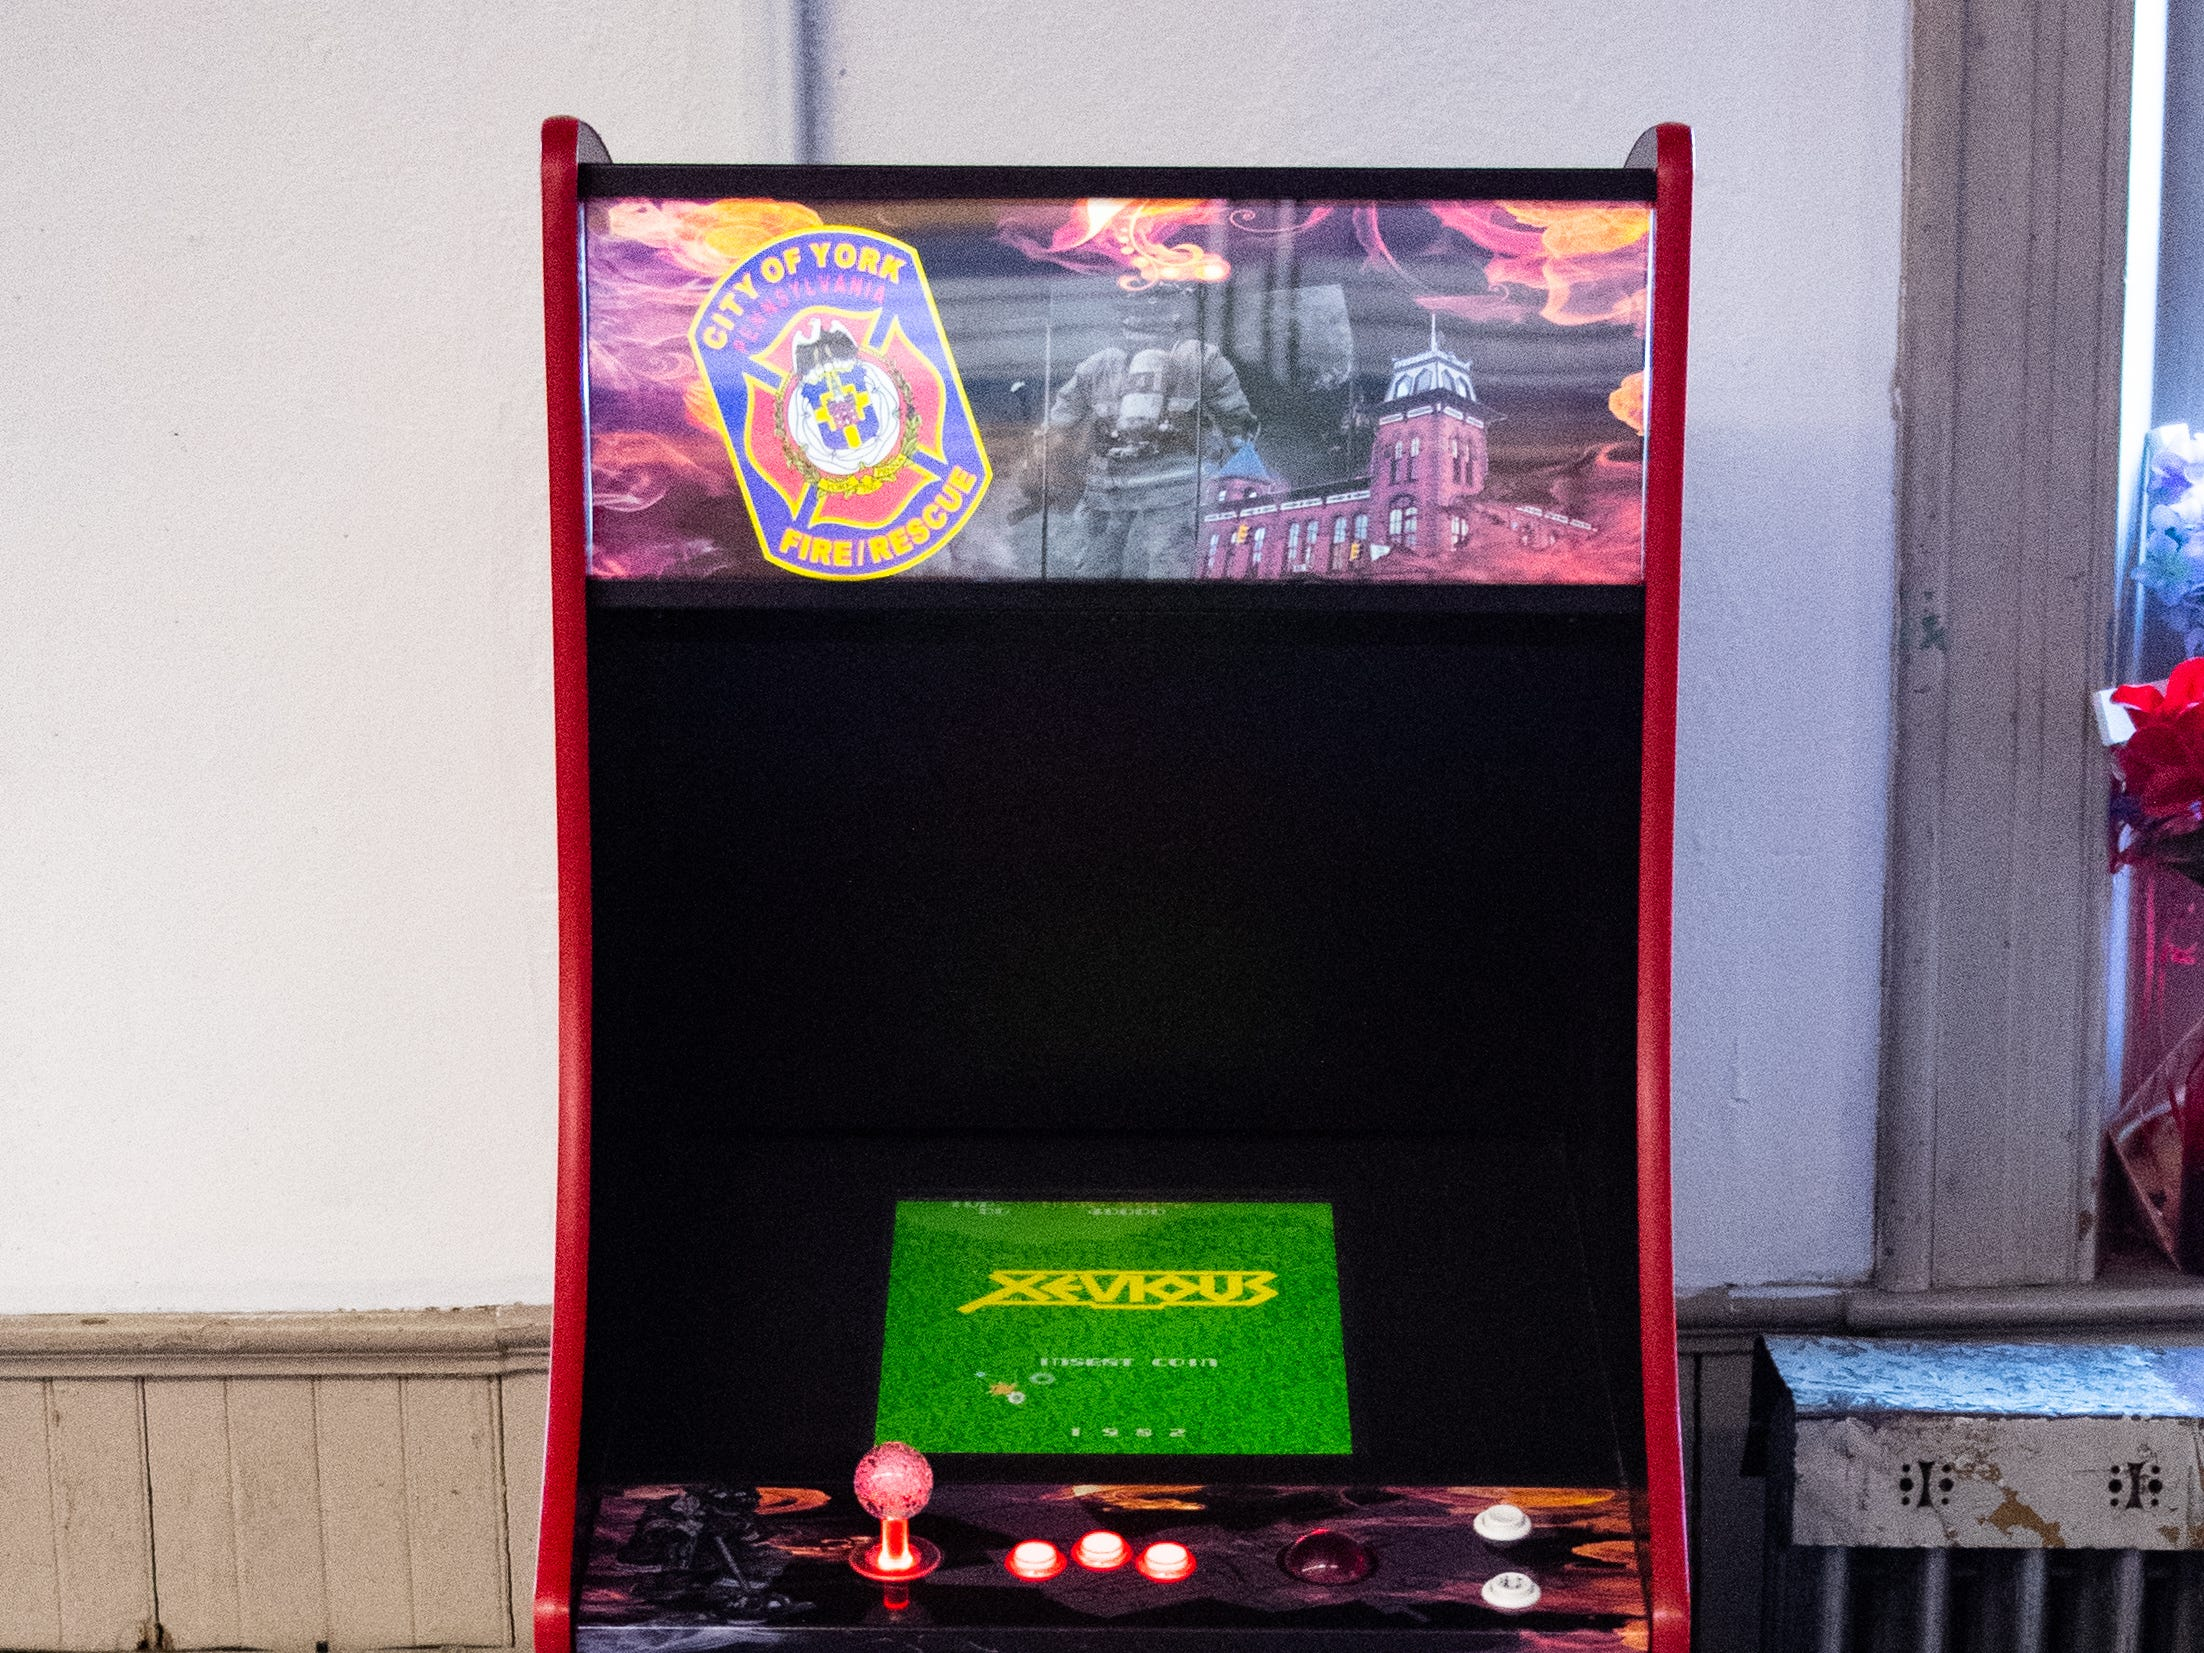 An arcade game dedicated to the York City firefighters was given to the station to help pass the time when they aren't putting out fires, March 12, 2019.